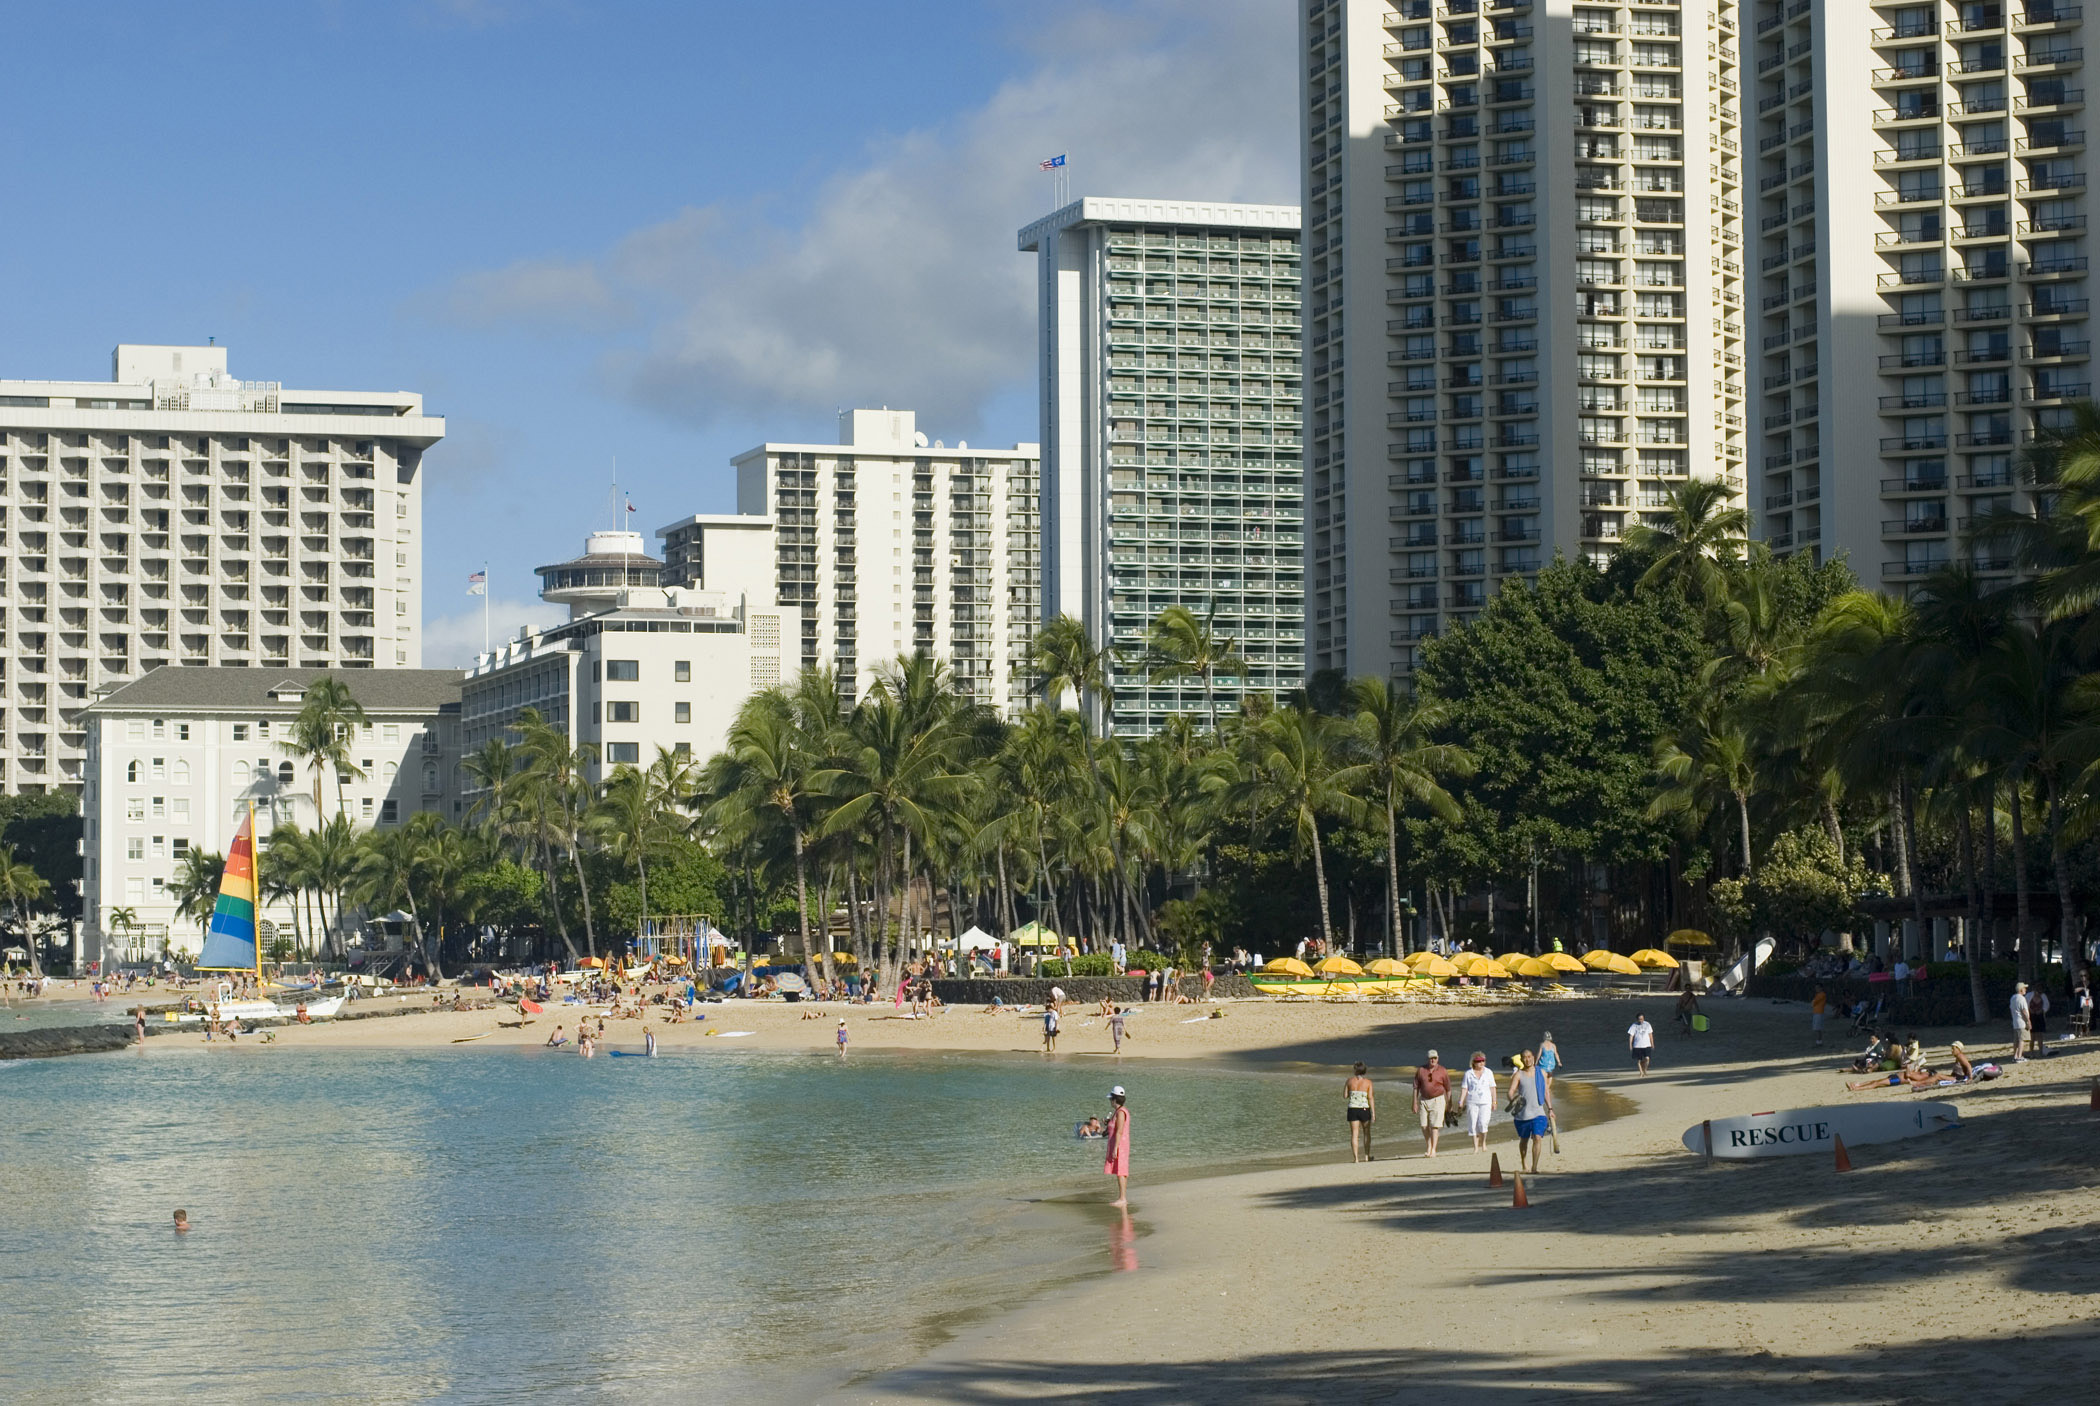 Random Tourists at Beautiful Seashore of Waikiki Beach. Captured with Huge Buildings at Beachfront.